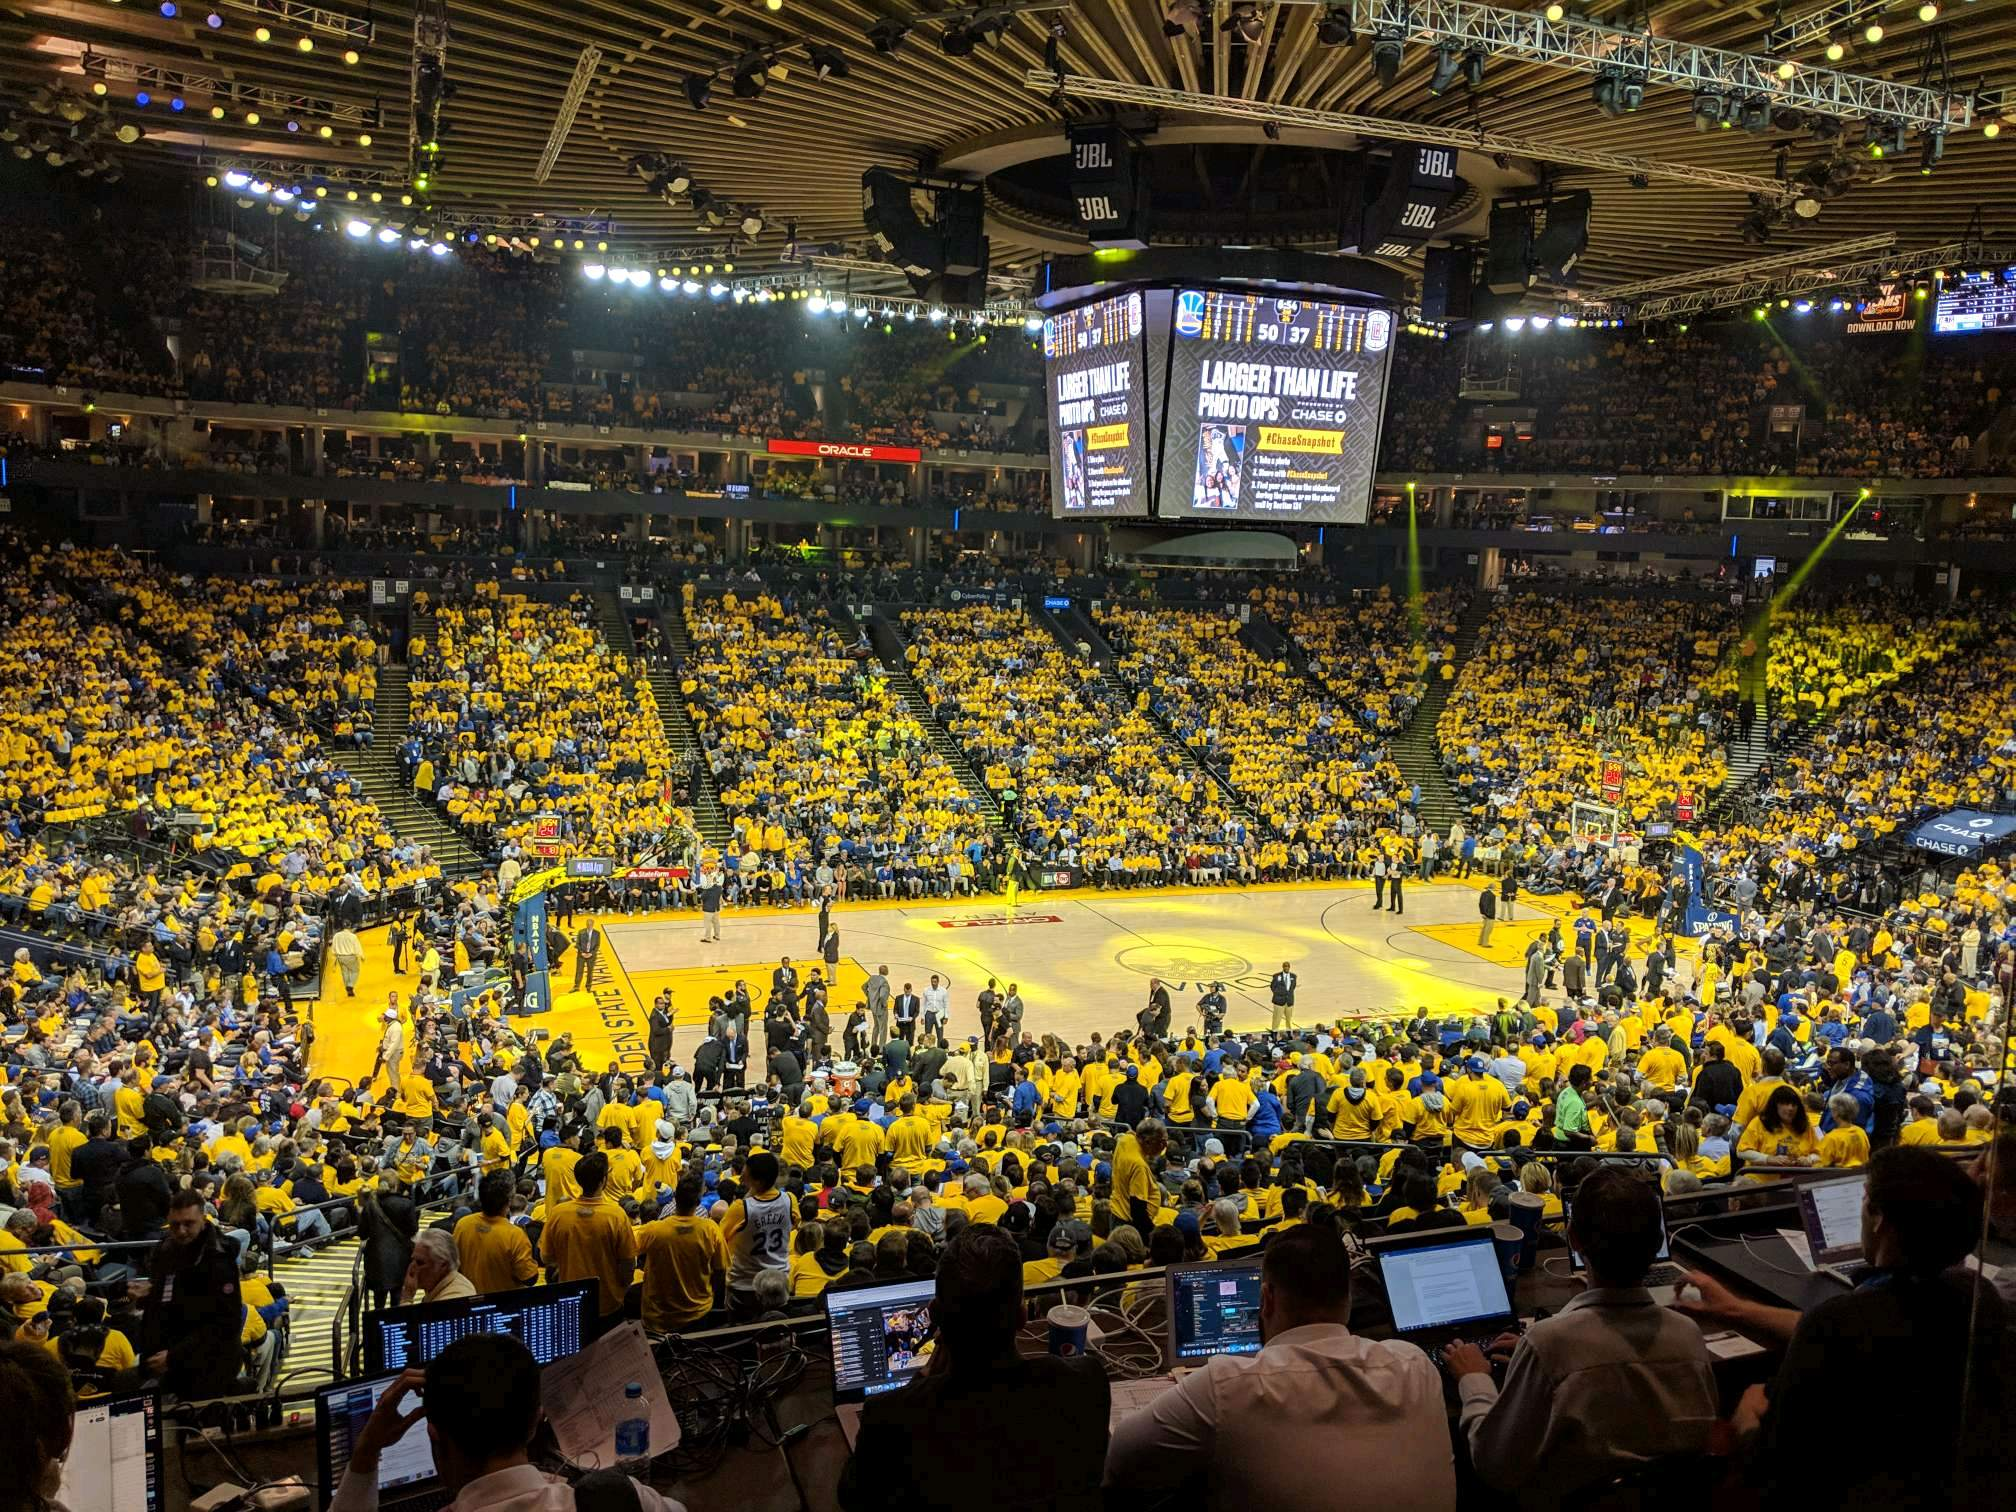 Oracle Arena Section C11 Row 2 Seat 2